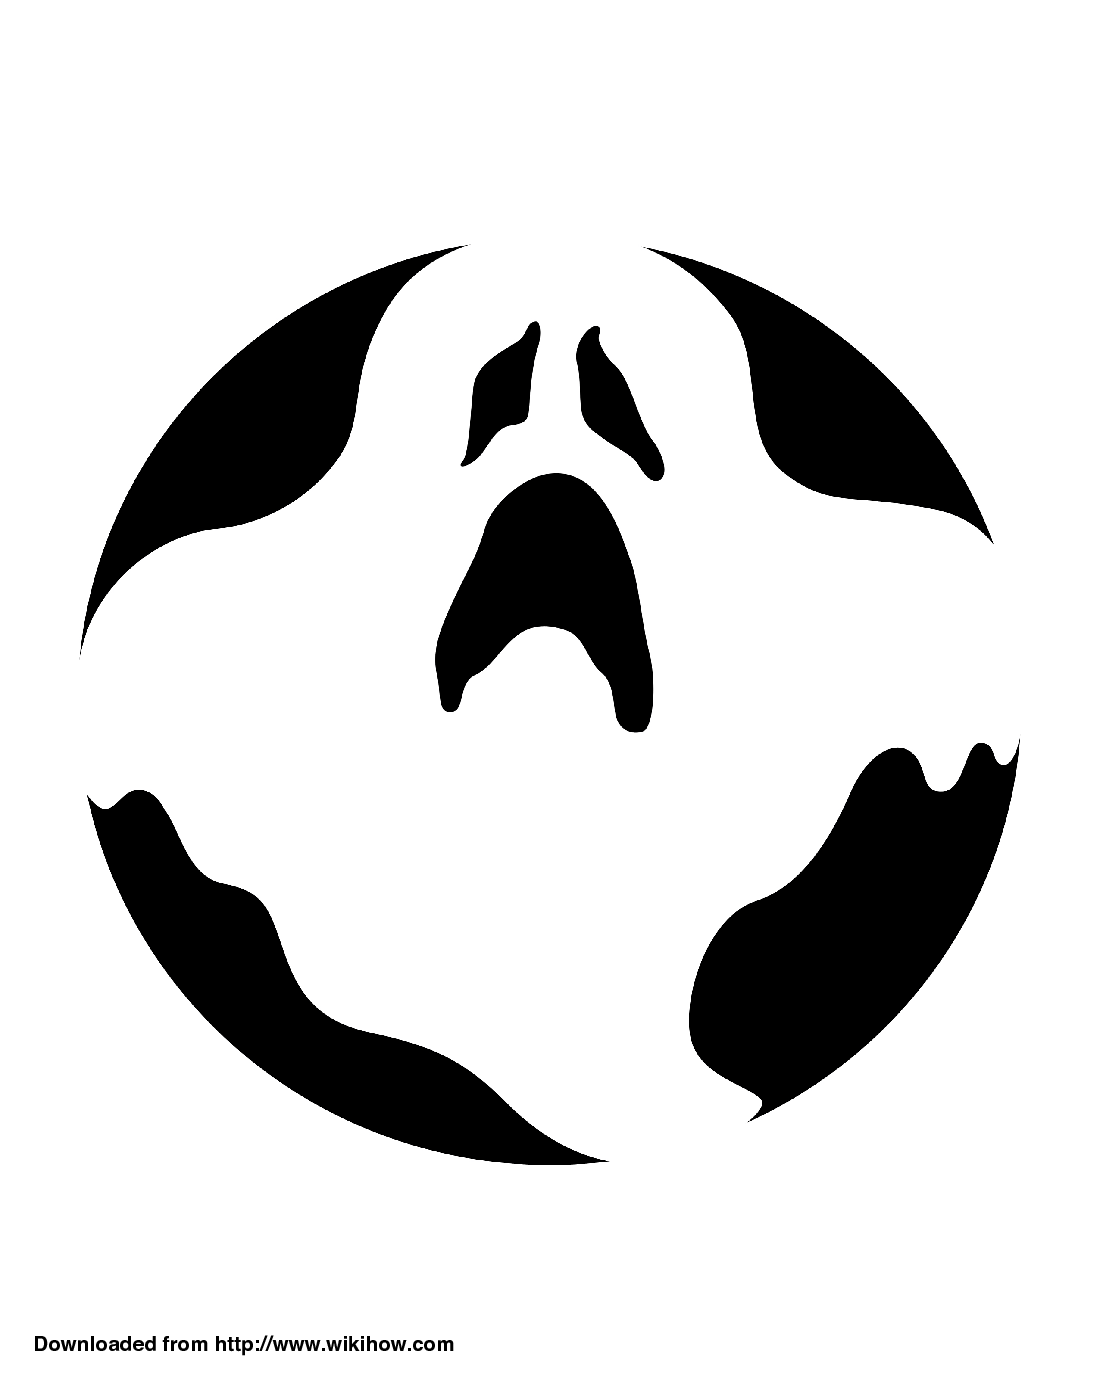 Printable ghost pumpkin template crafts pinterest pumpkin printable ghost pumpkin template sciox Choice Image